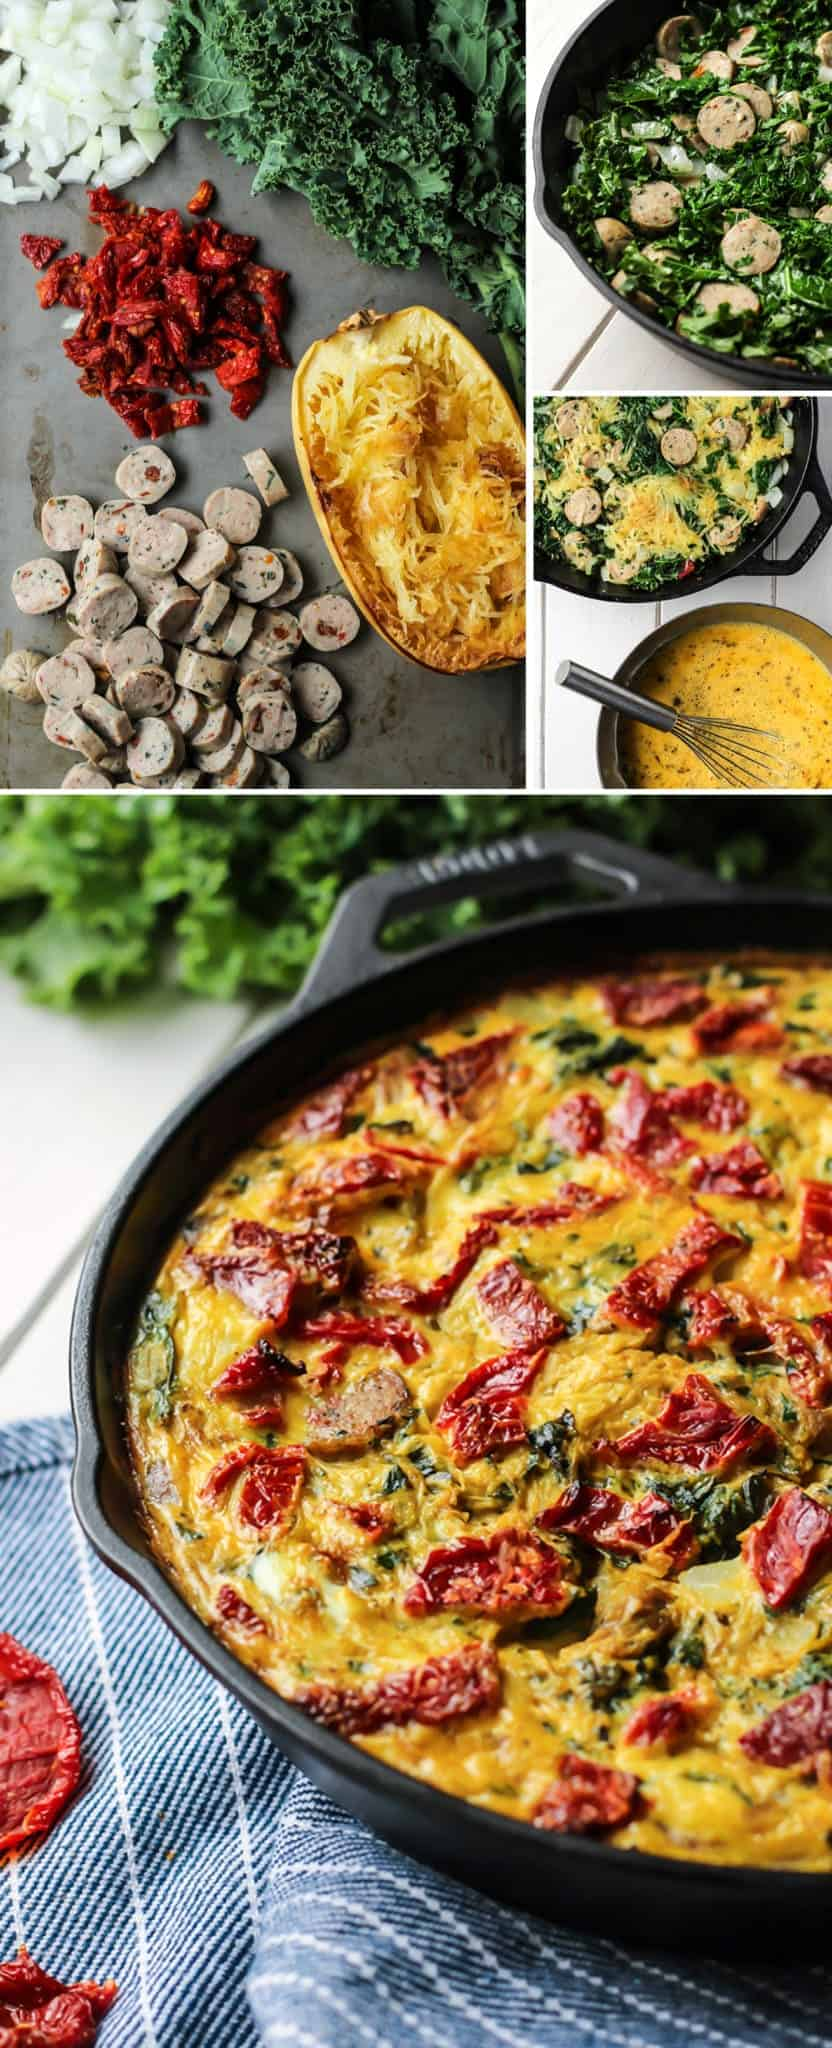 Sausage Kale Spaghetti Squash Frittata ingredients in mixing bowl and cast iron skillet